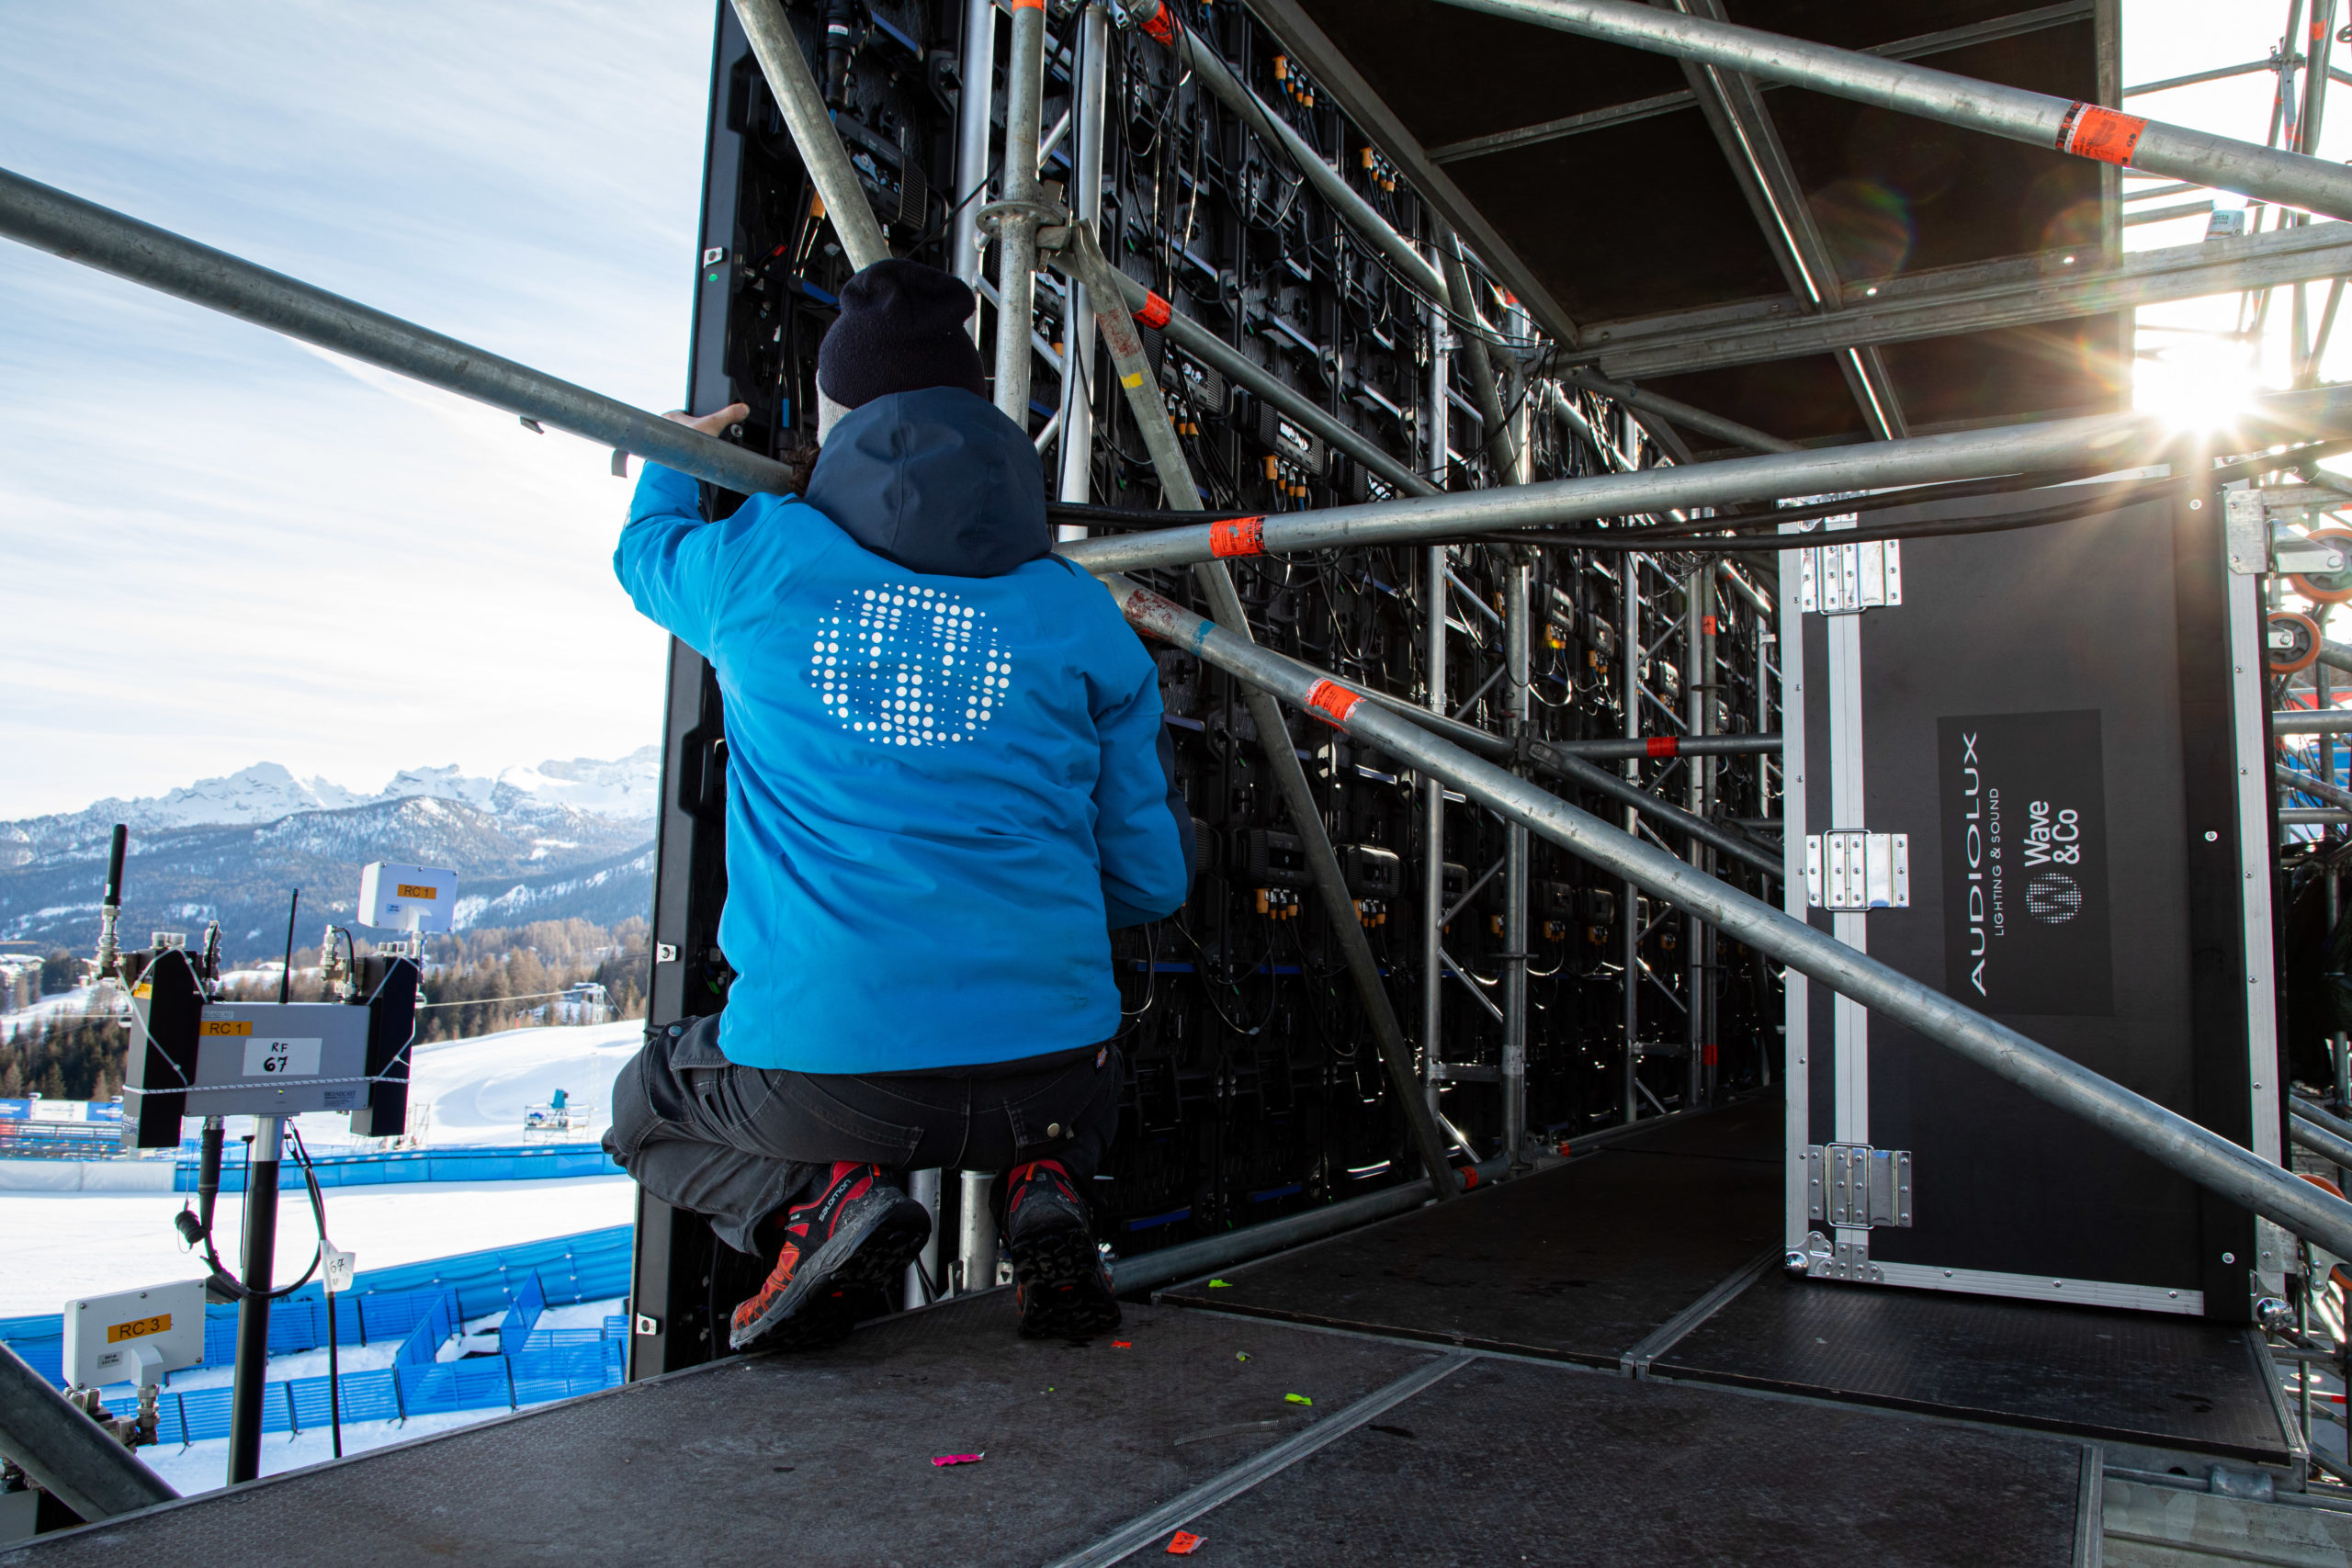 20210205_Mondiali Cortina_Backstage_3